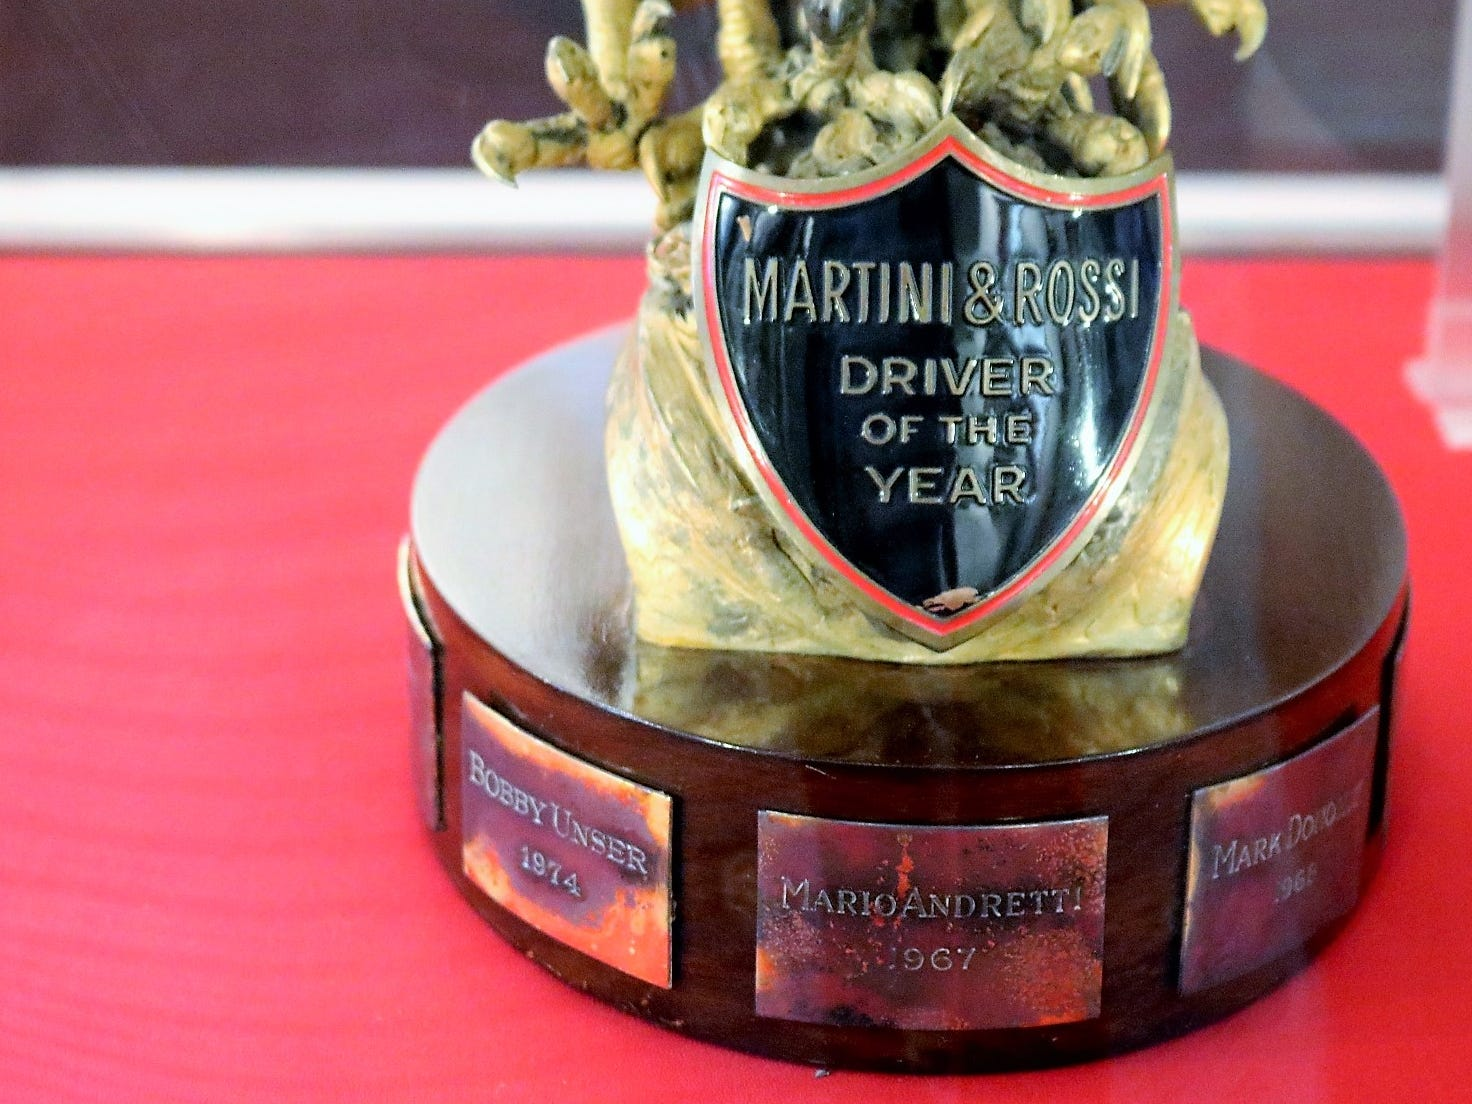 The brand became intricately linked to the world of racing, with drivers such as Mario Andretti earning honors as the Martini & Rossi Driver of the Year.